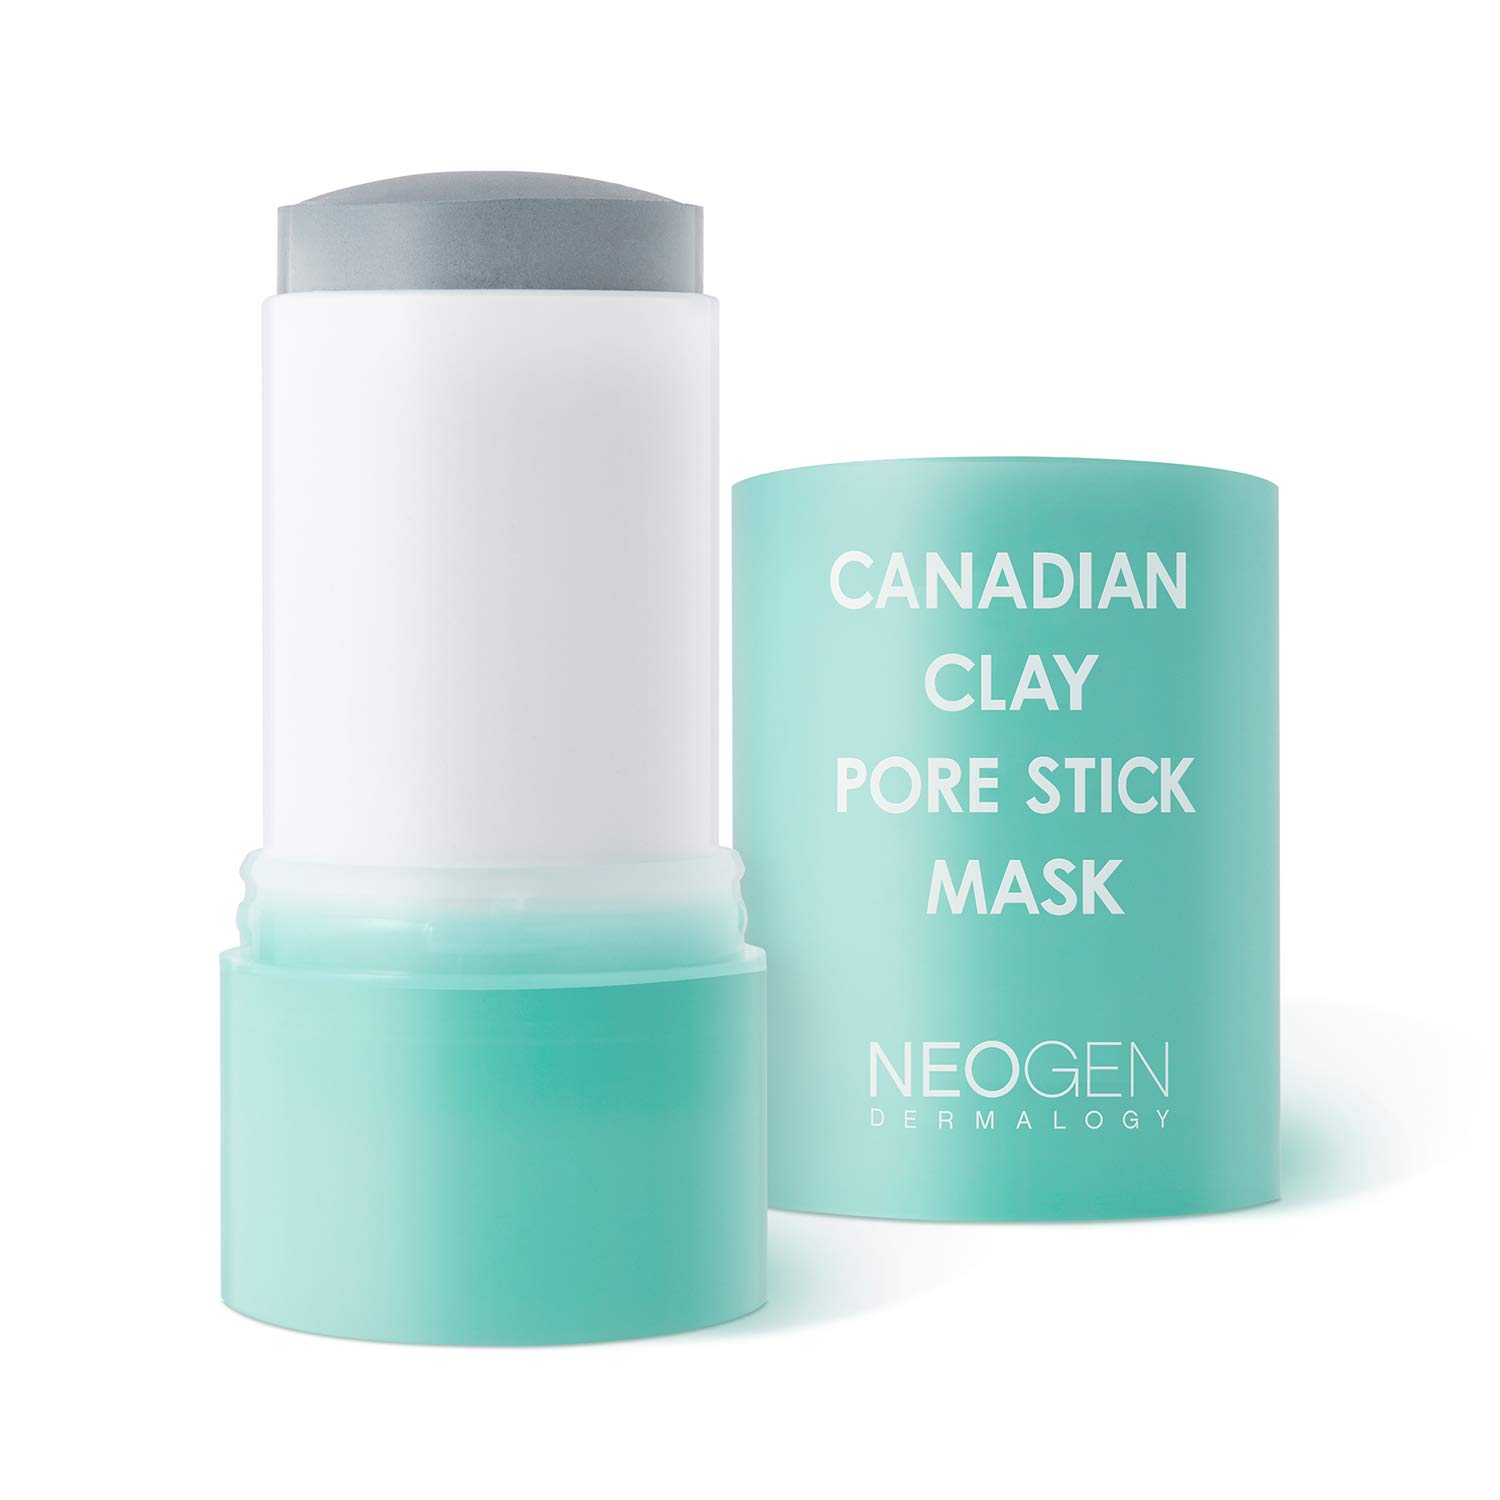 Neogen Canadian Clay Pore Stick Mask